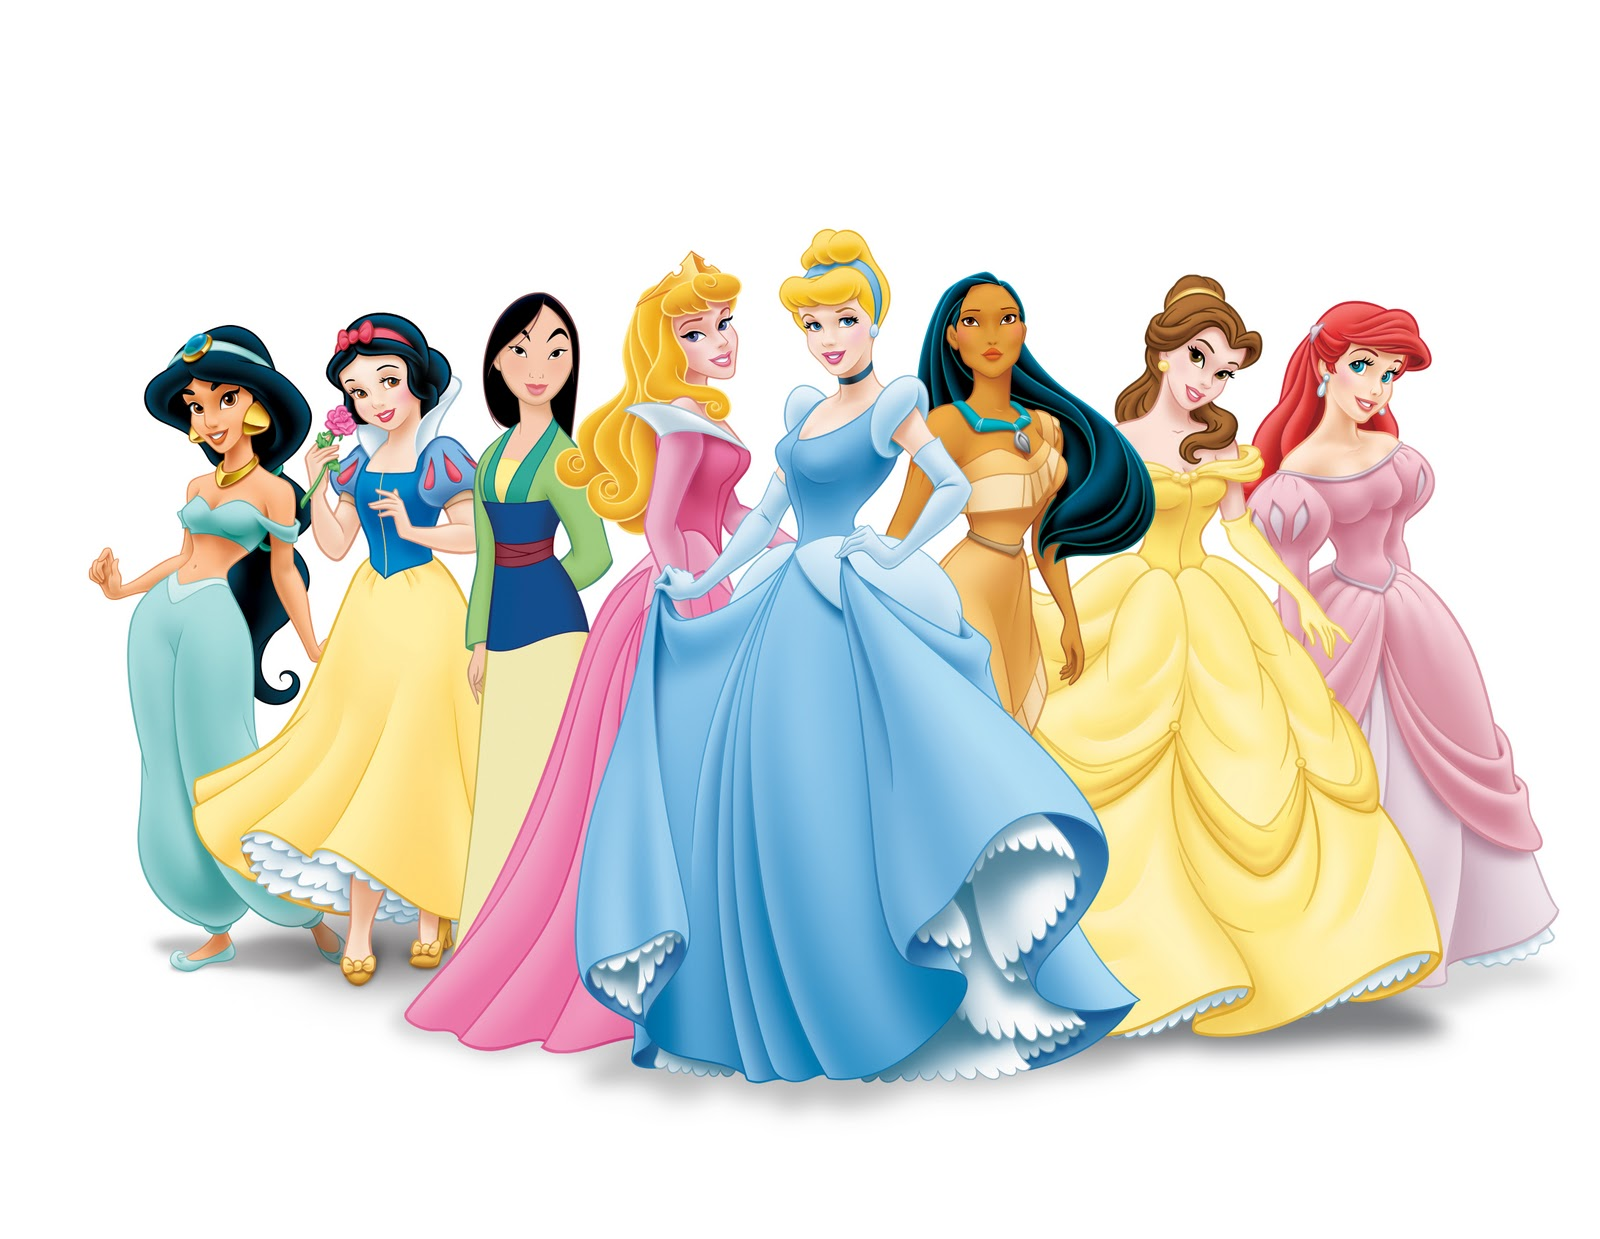 There are lots of princesses